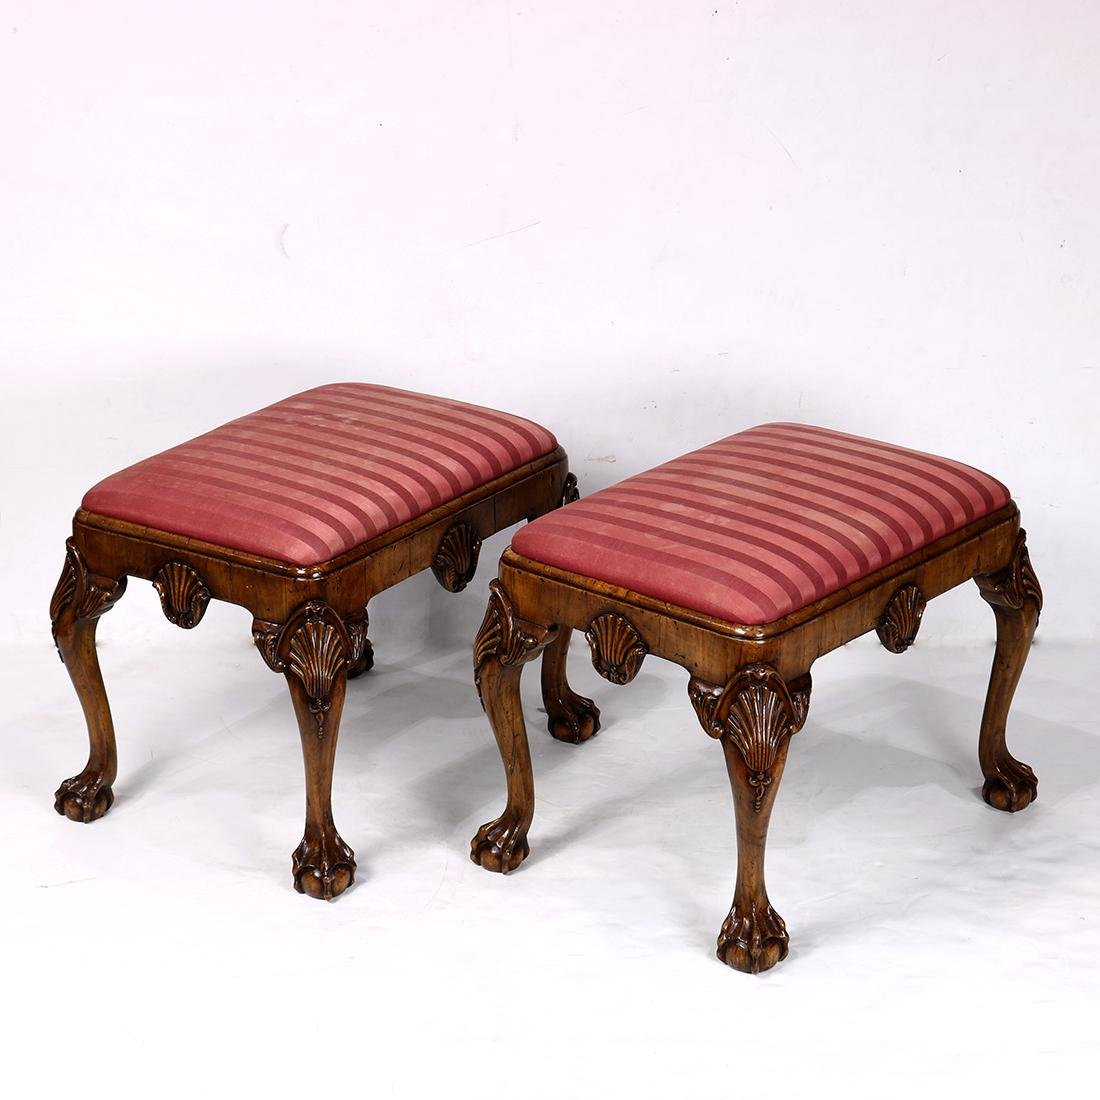 Pair of Chippendale style ottomans, having an